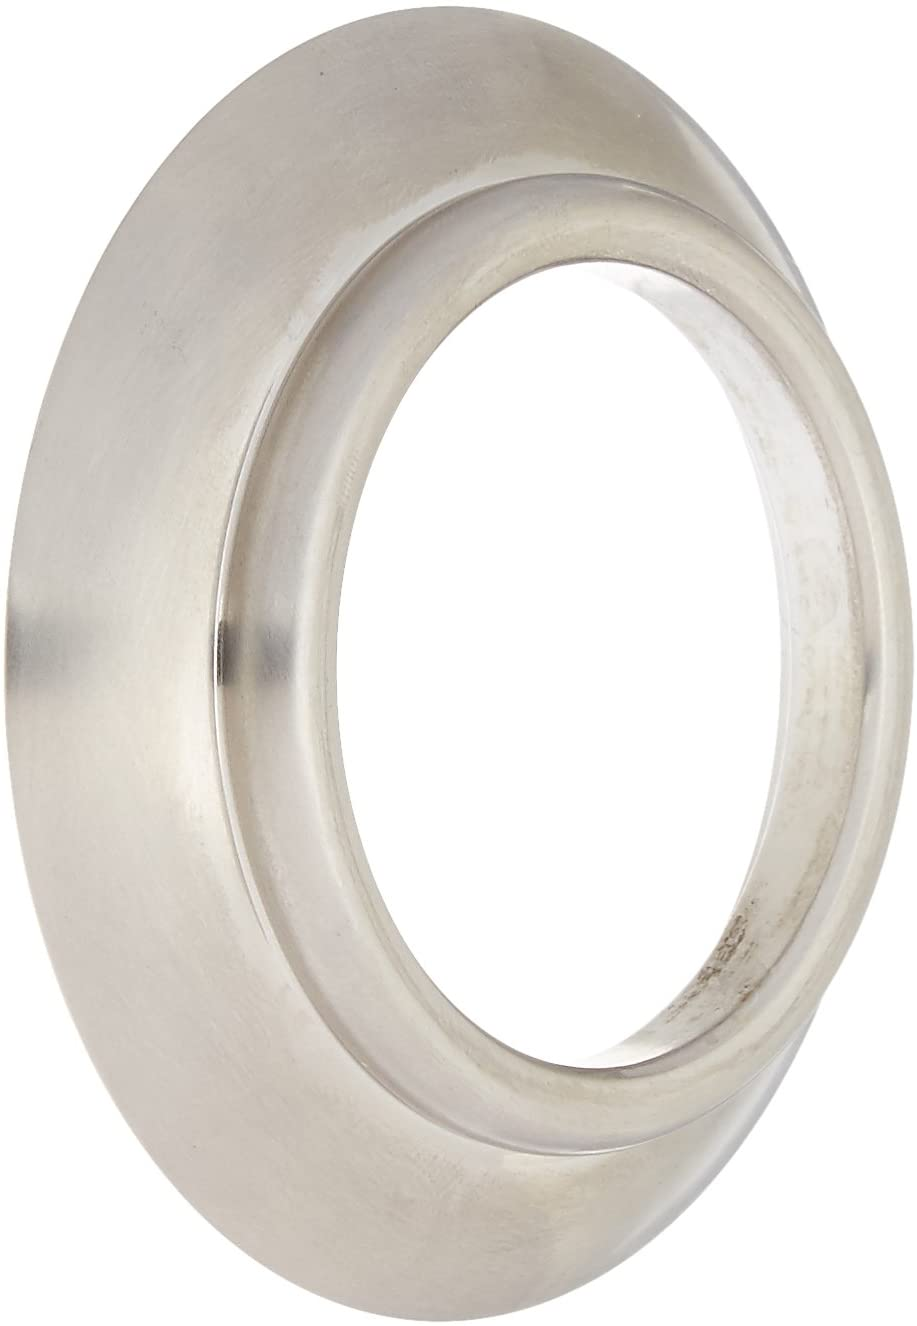 Rohl C1449/7STN 9.17862Eb Country Bath Base Ring Only for Deck Mounted Tub Fillers, Satin Nickel